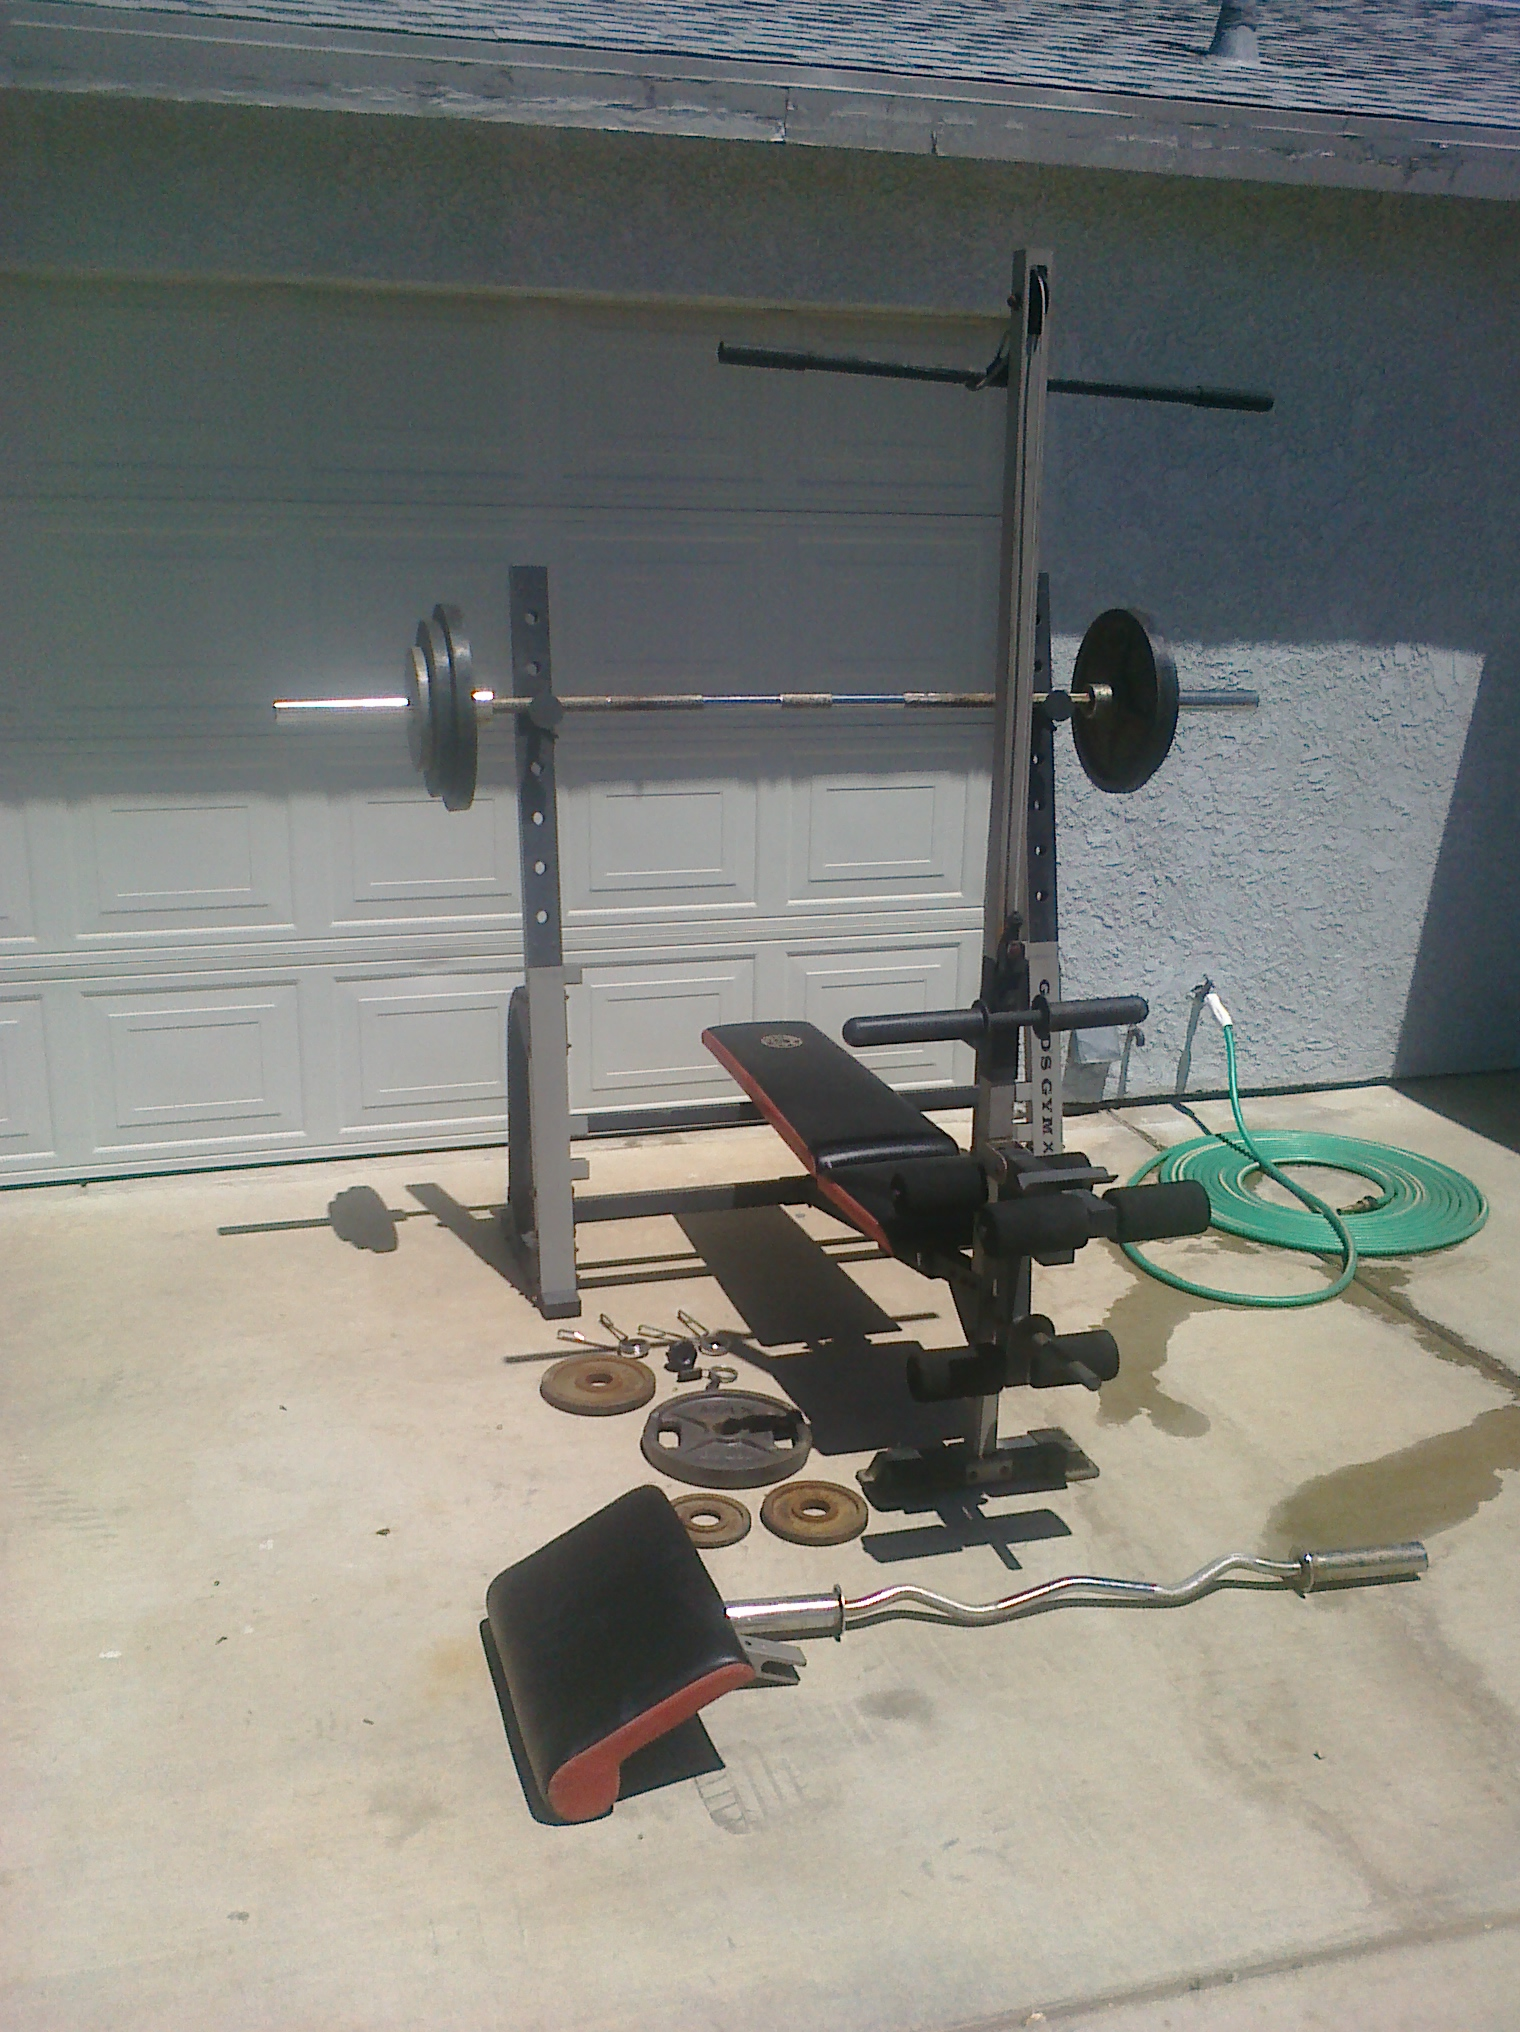 Craigslist Weight Bench | Weider Bench Press Bar Weight | Weight Bench with Weights for Sale